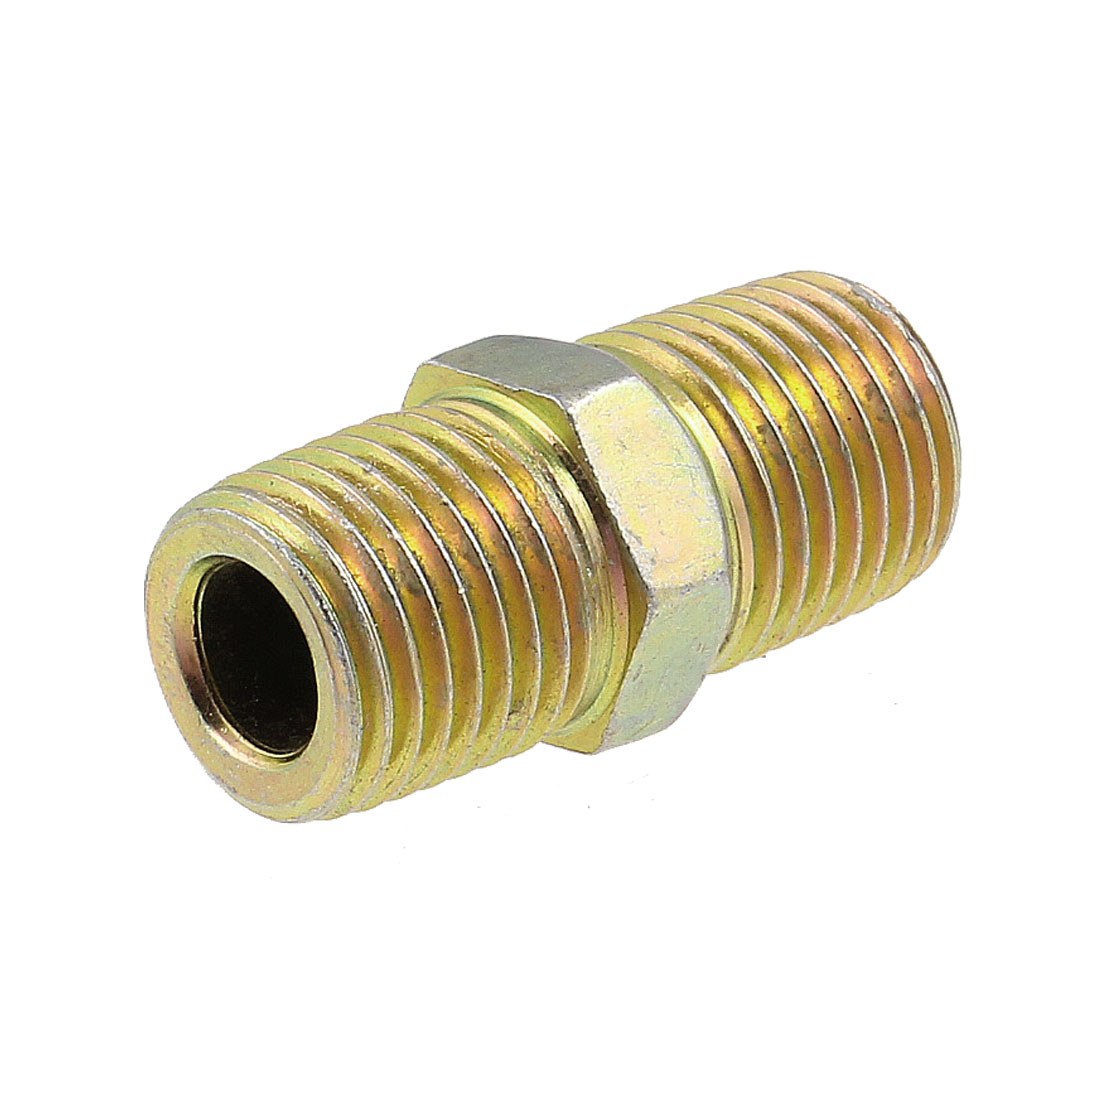 "Full Port 1/4"" to 1/4"" Male Thread Hex Bushings Water Pipe Fitting Coupling"